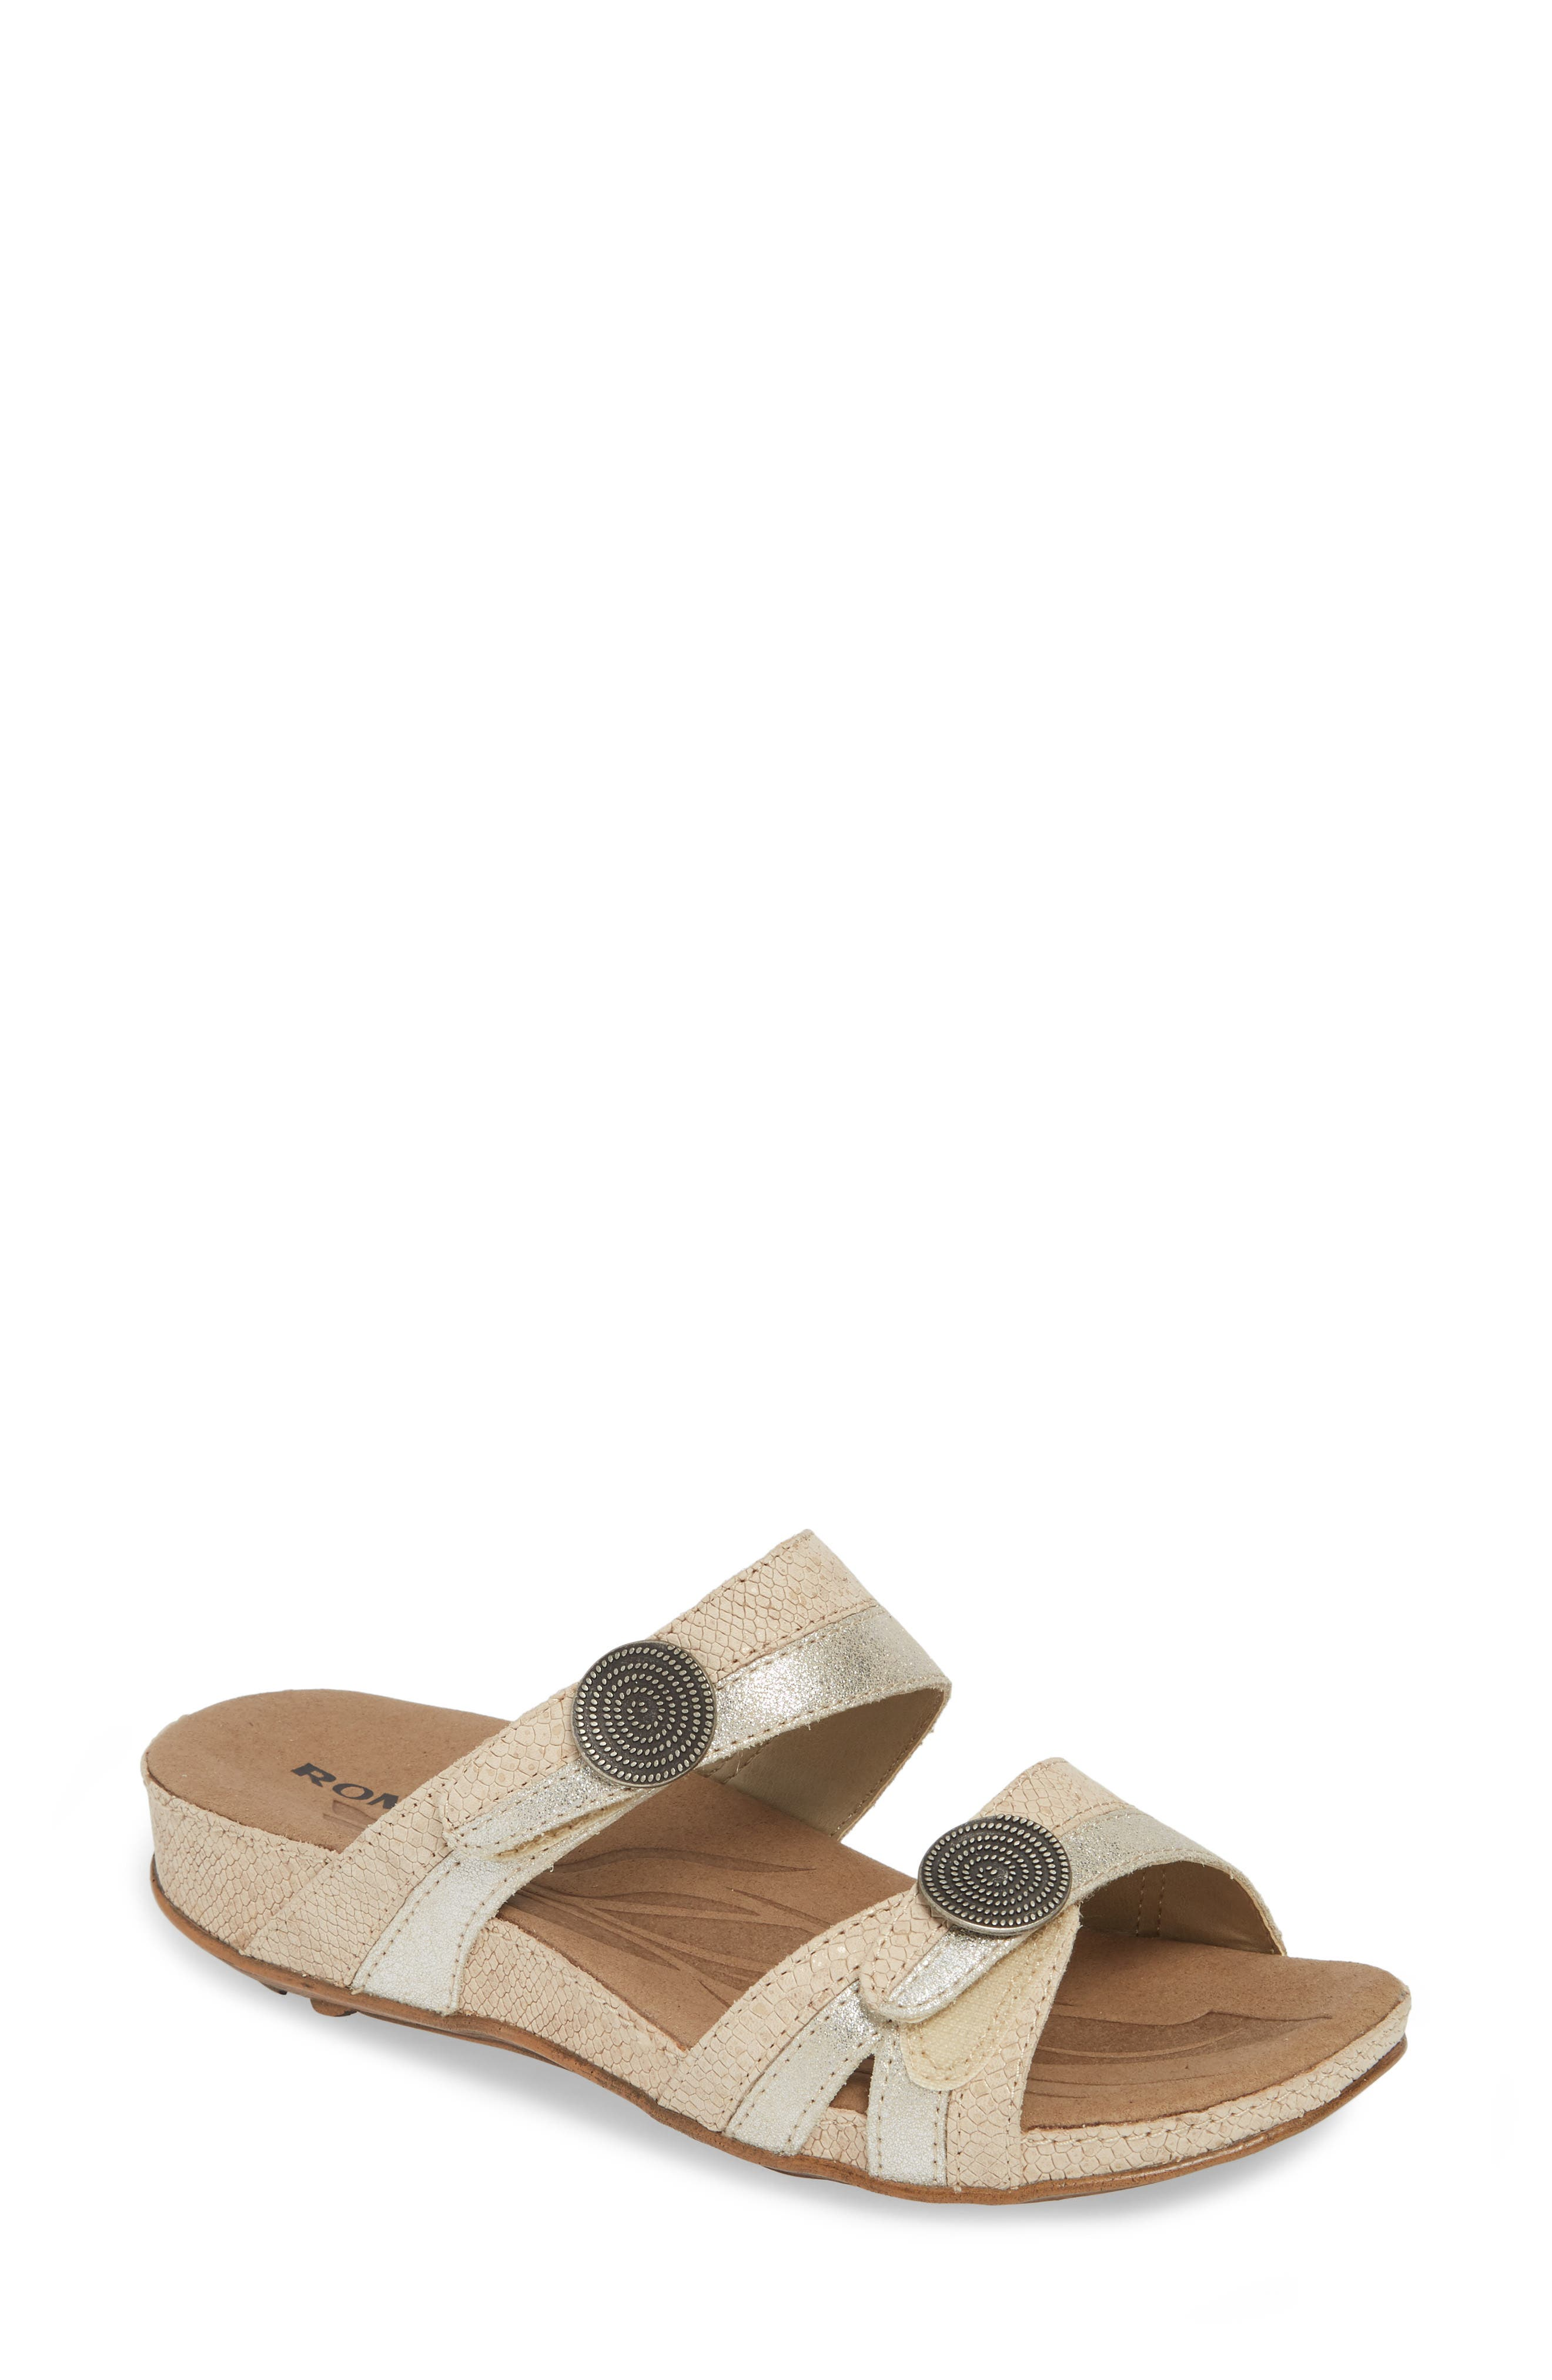 ROMIKA<SUP>®</SUP> 'Fidschi 22' Sandal, Main, color, SILVER LEATHER